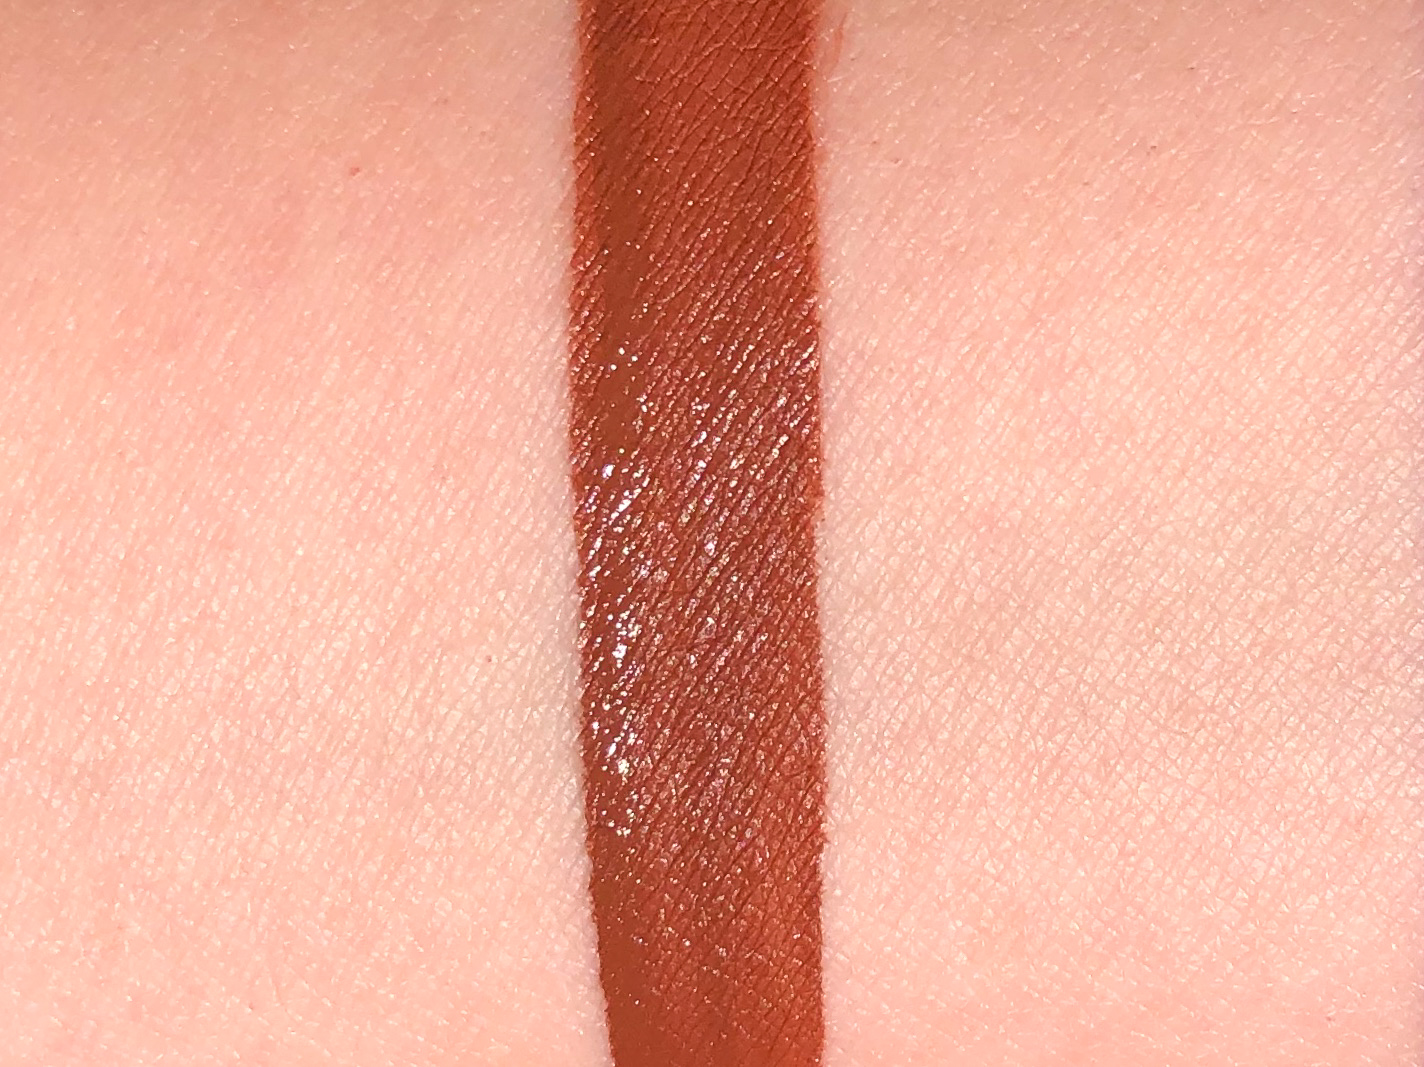 Recensione Rossetto liquido ultra opaco L'Oréal Volupto Choco Les Chocolates 2-2